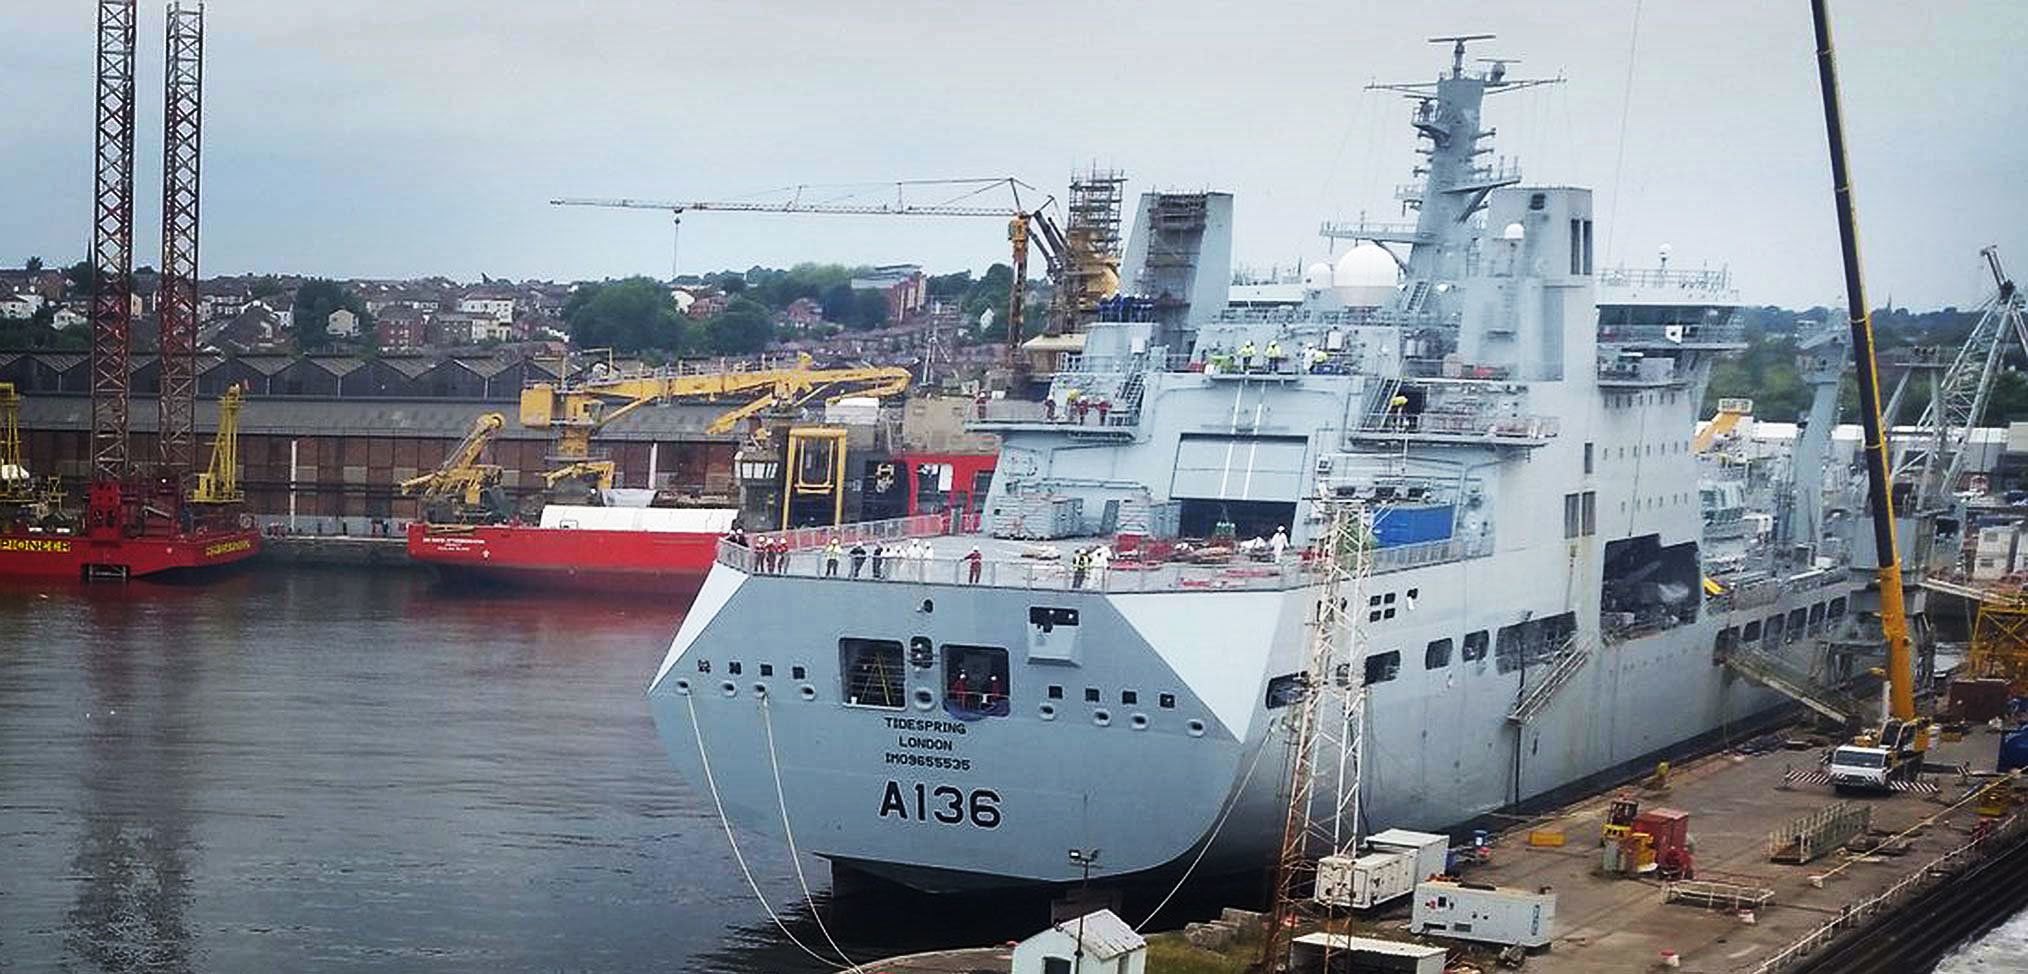 RFA Tidespring – another refit behind schedule?